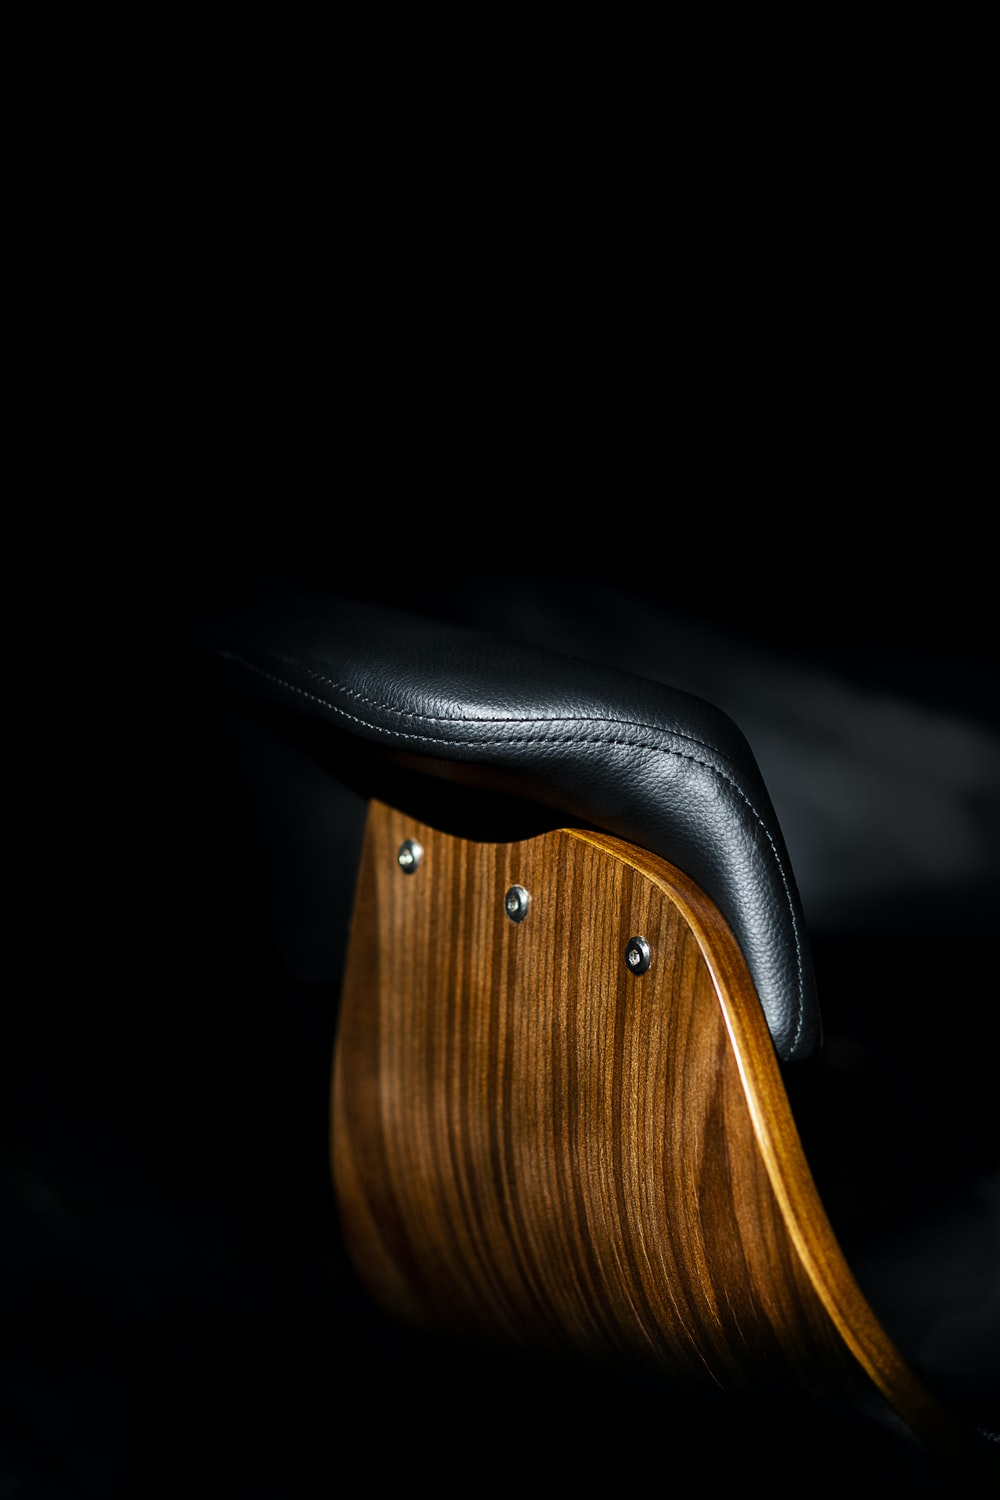 brown wooden saddle